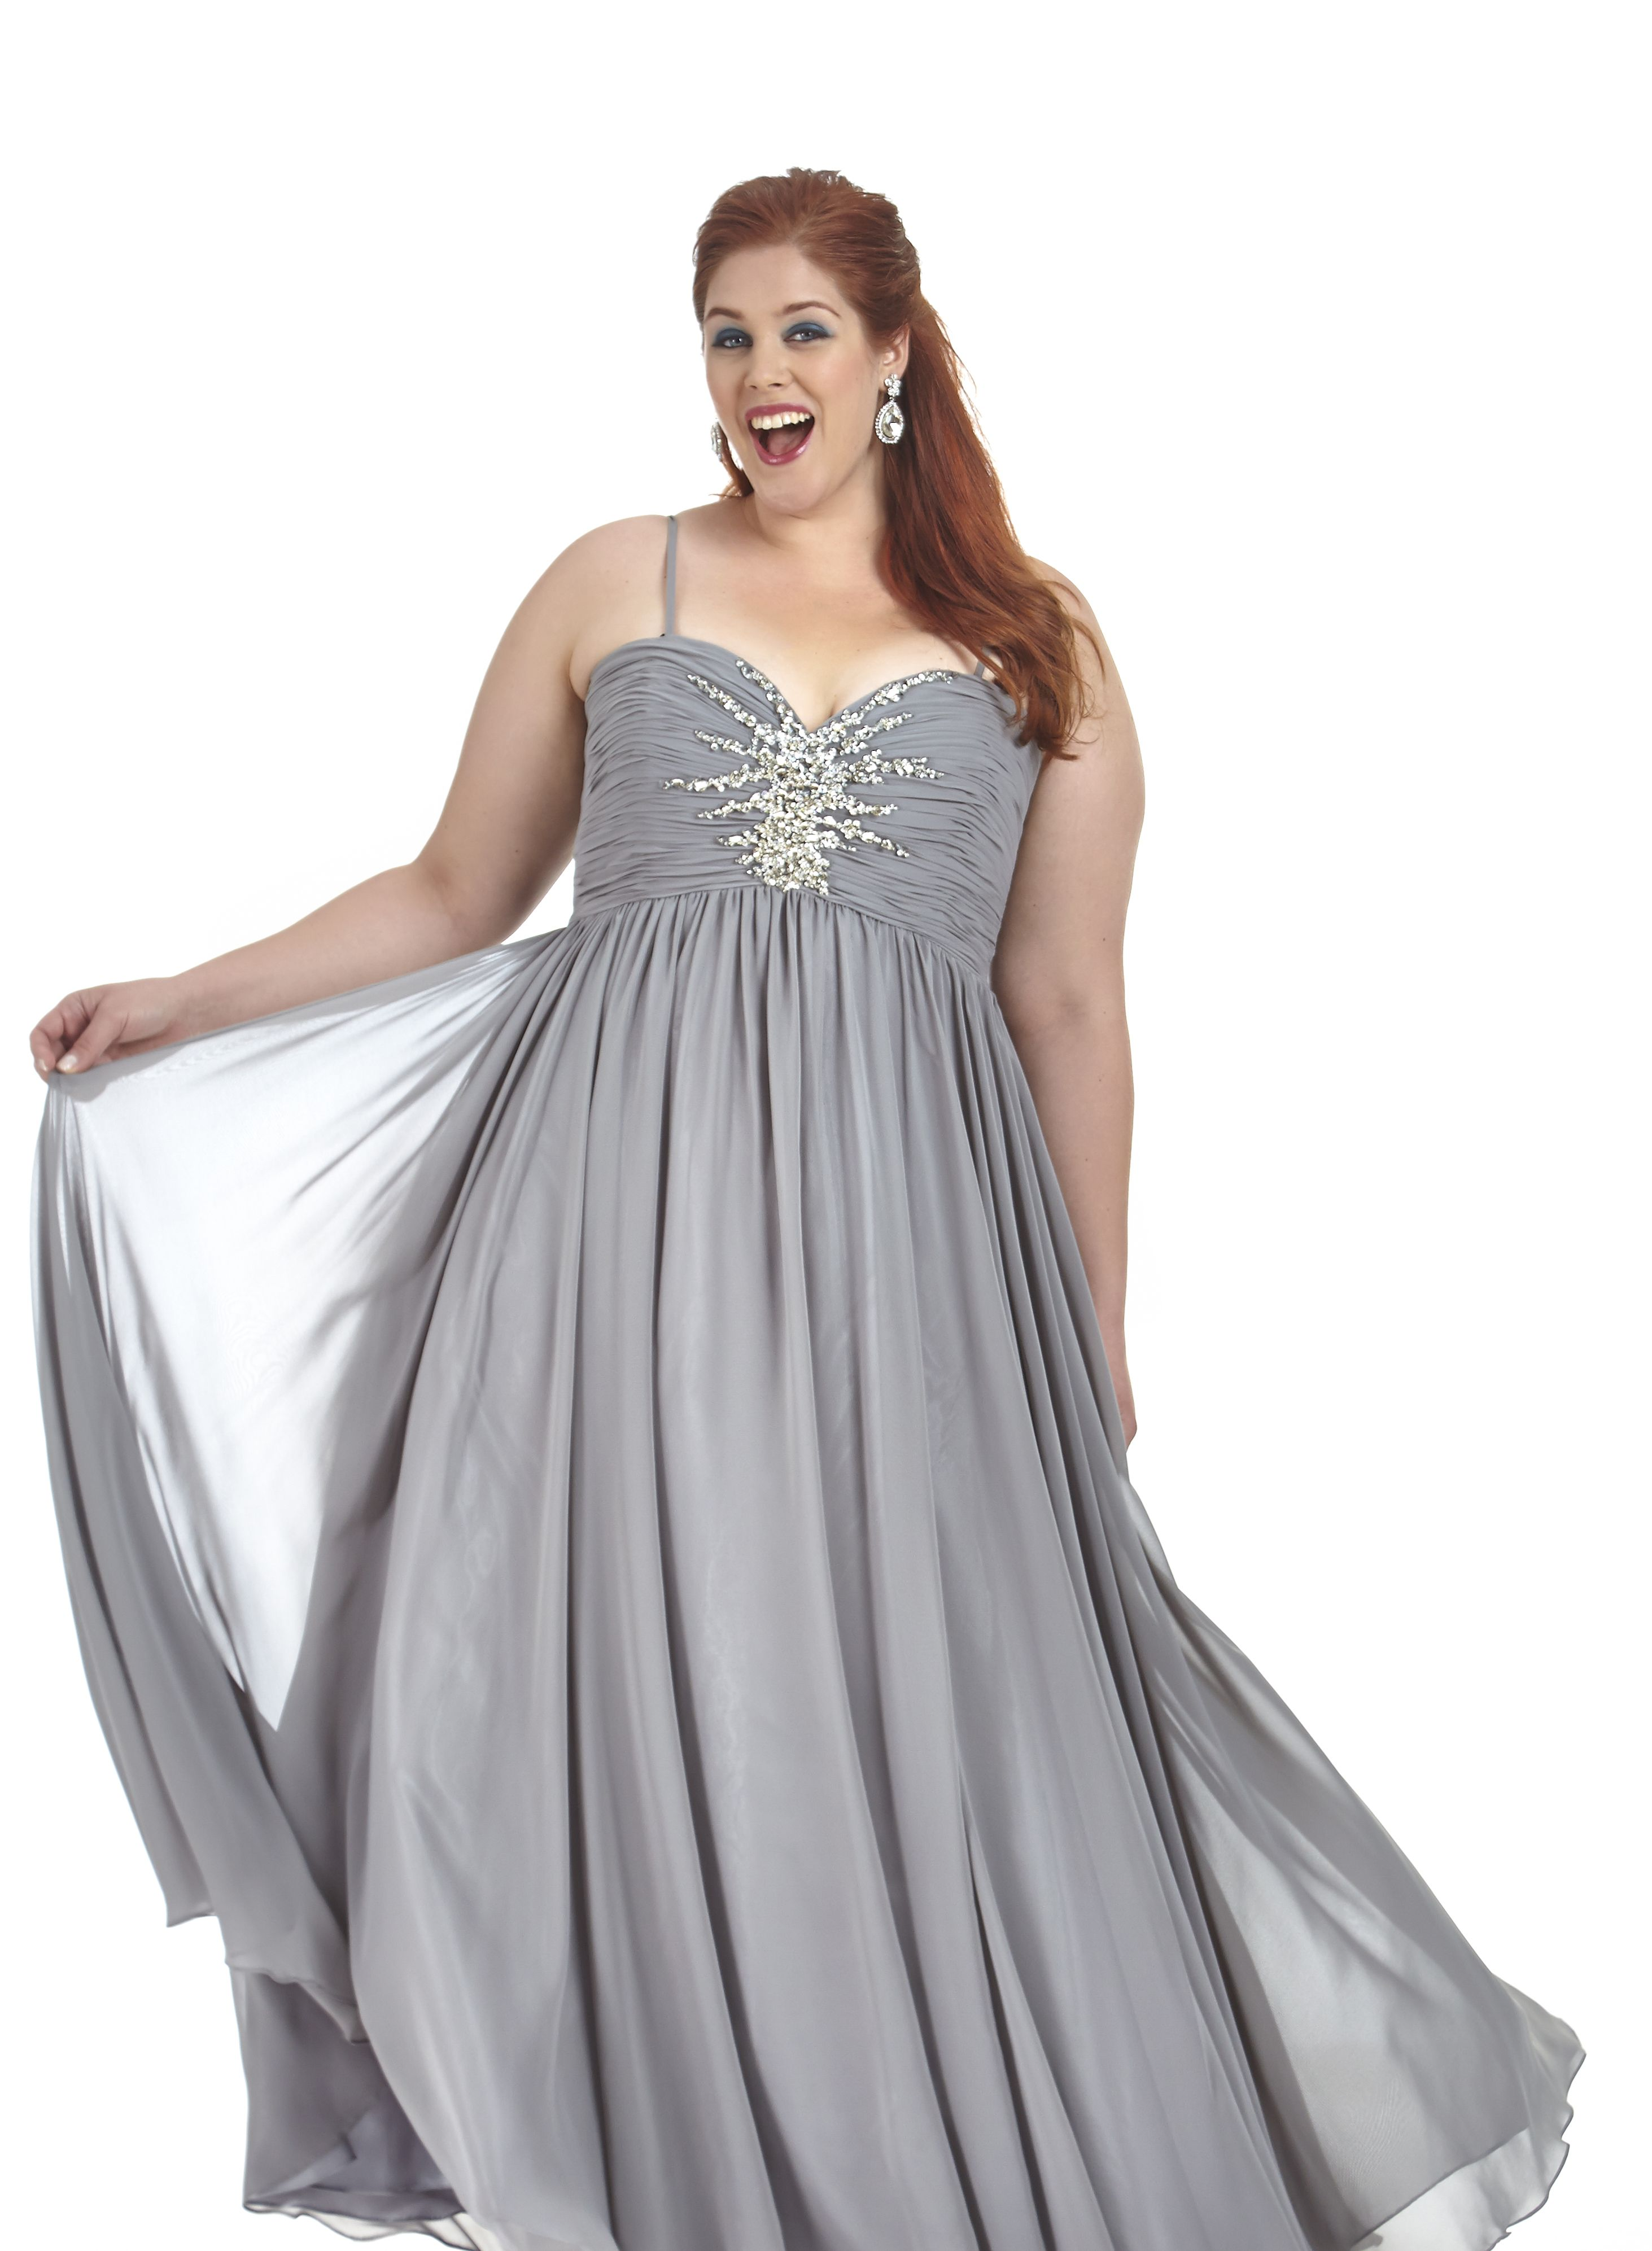 Our lovely starburst gown comes in eight unique colors